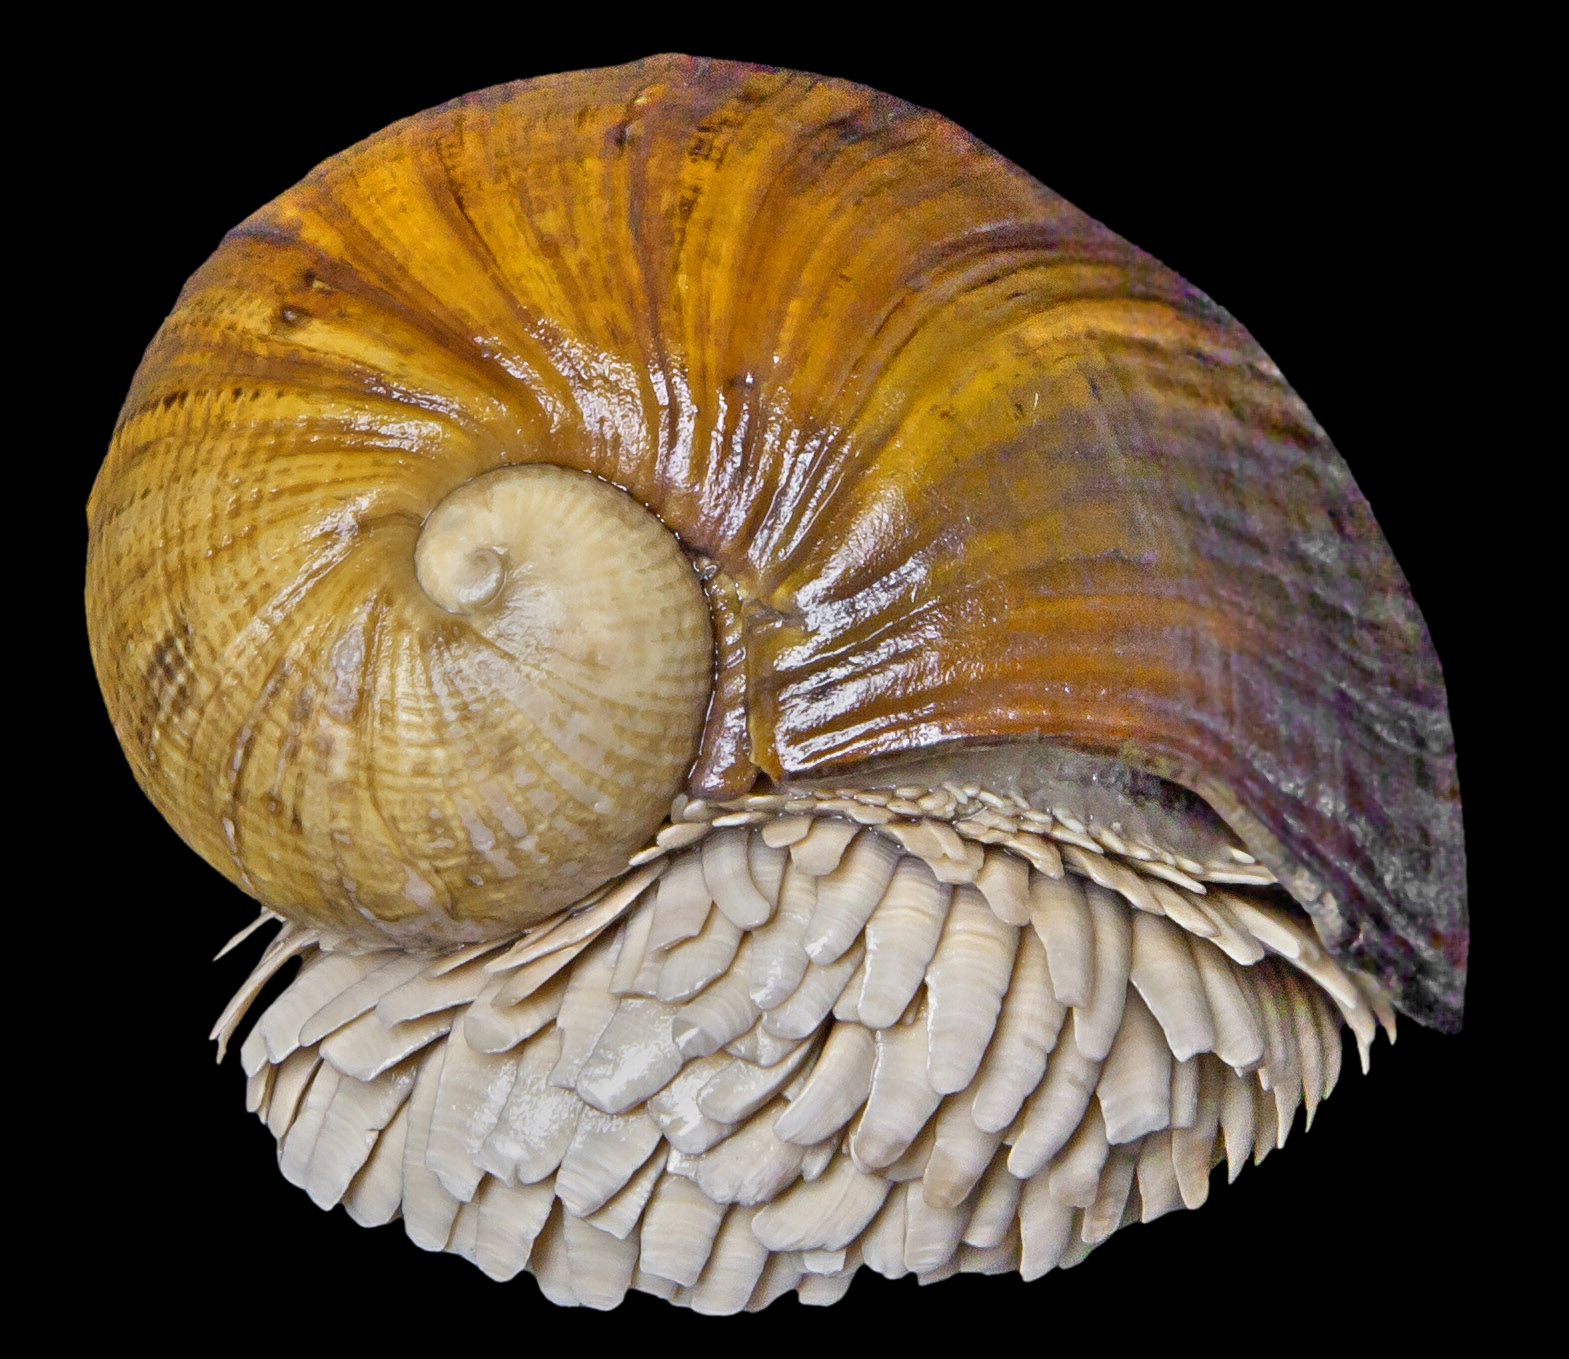 Scaly-foot gastropod: the iron snail of the Indian Ocean